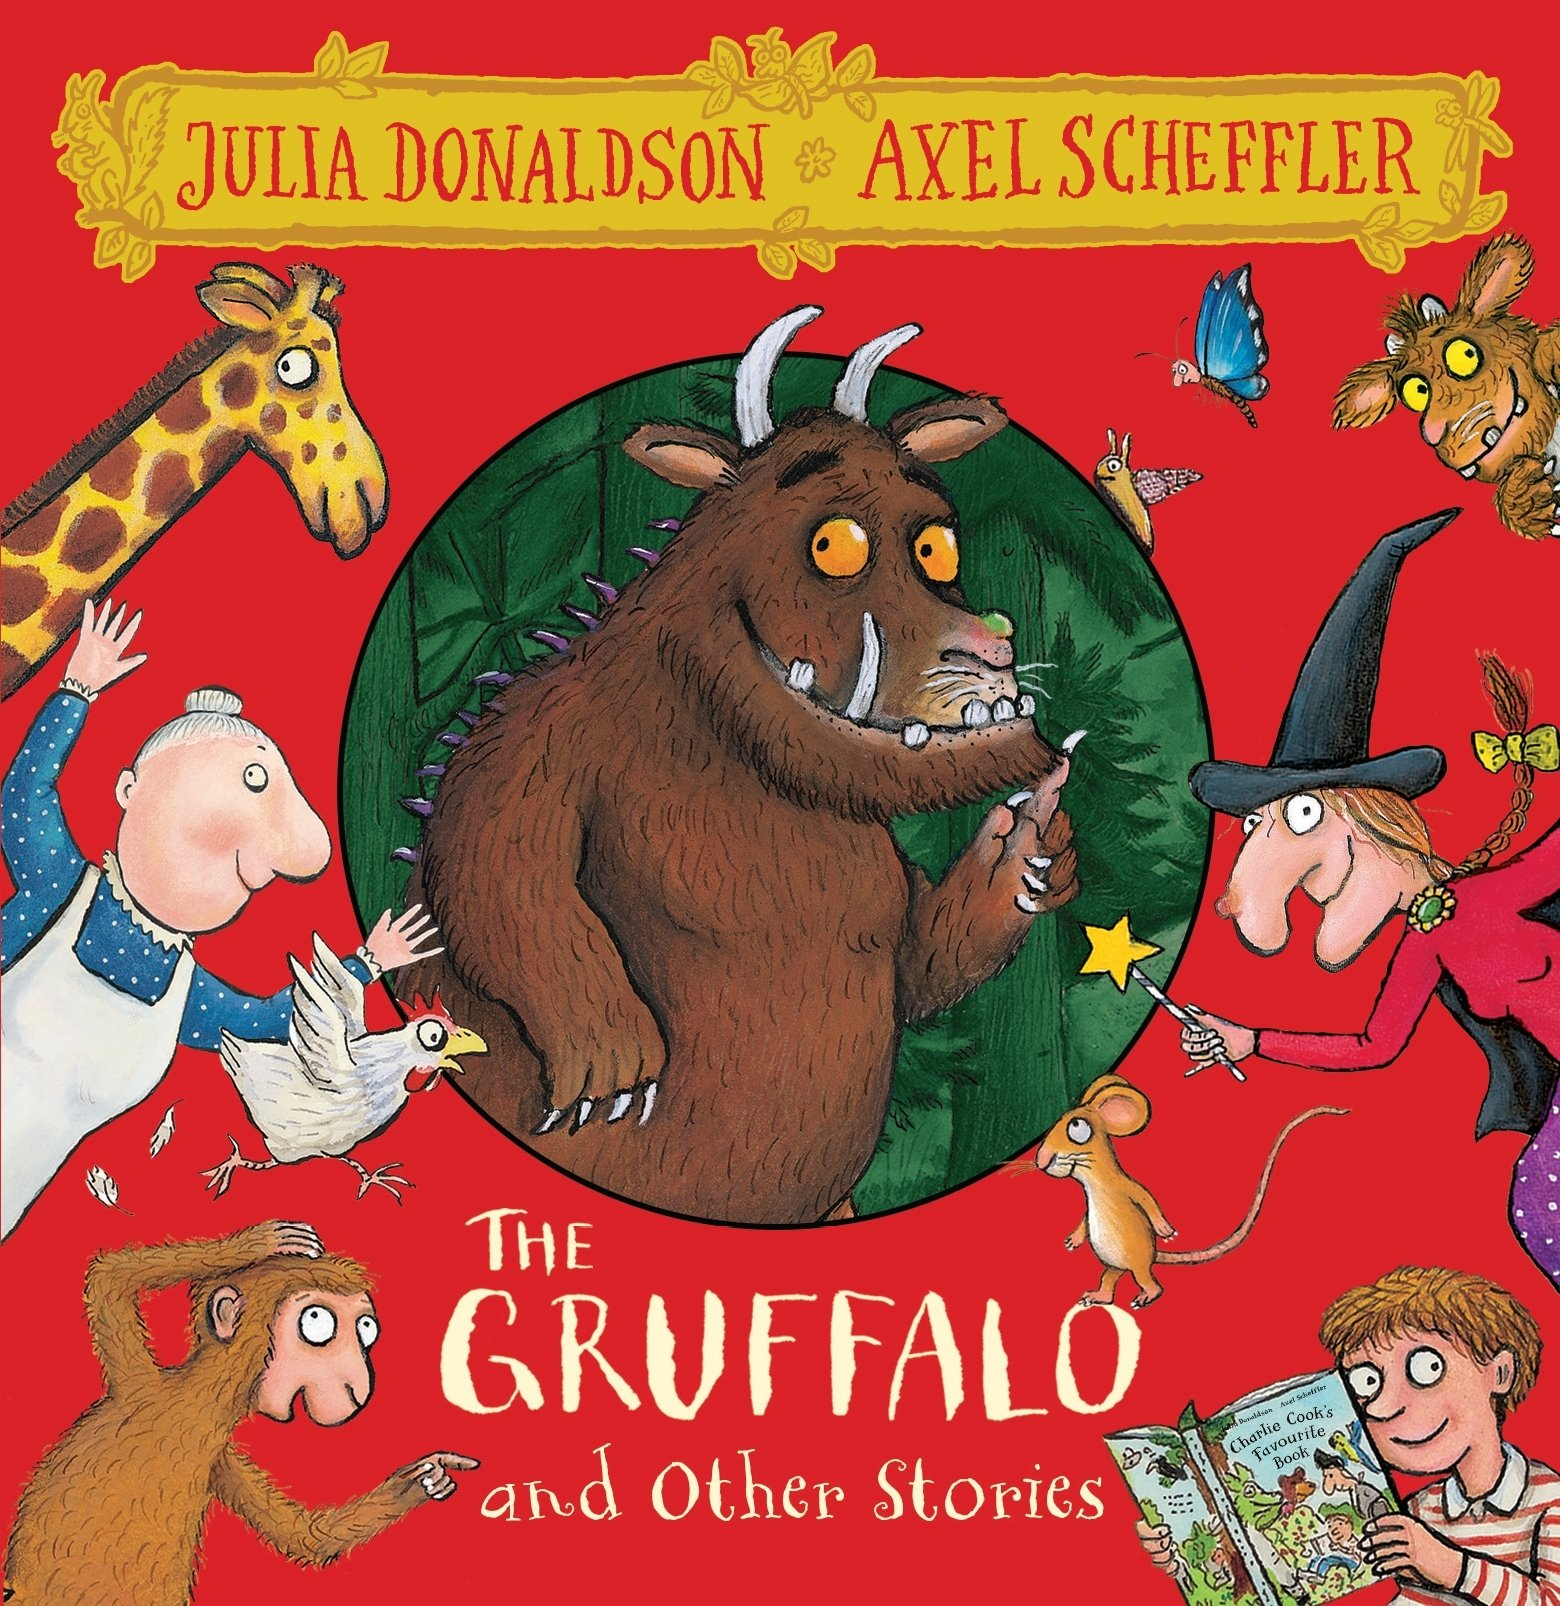 The Gruffalo and Friends. 8 CDs: The Gruffalo / The Smartest Giant / A Squash and a Squeeze / Room on the Broom / The Snail and the Whale / Monkey Puzzle: